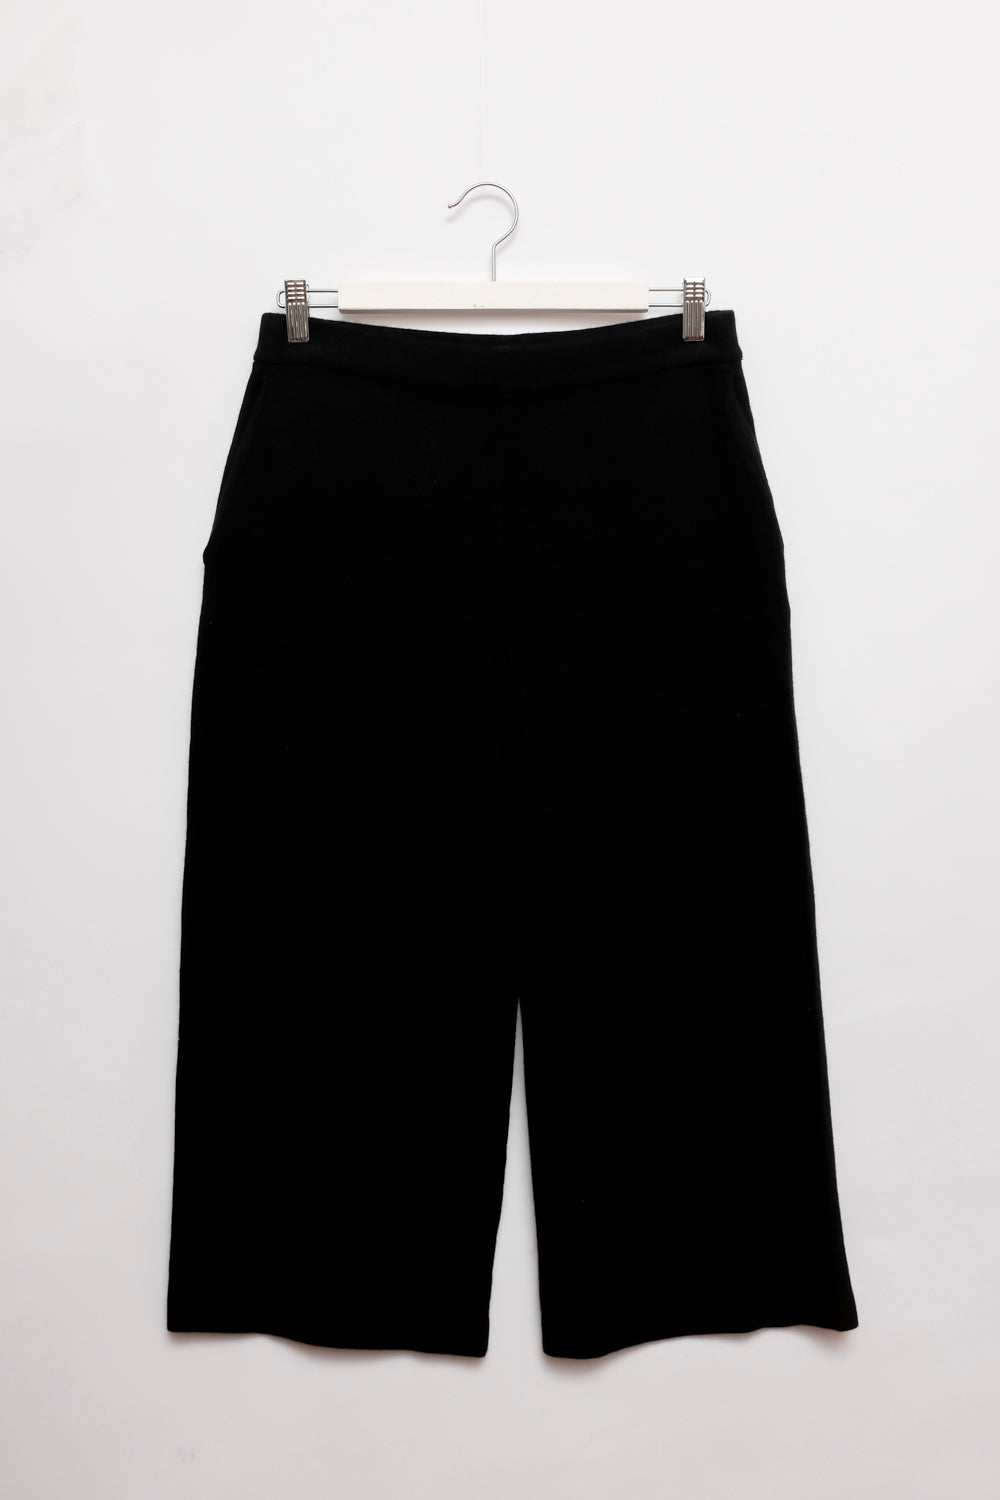 0019_COS BLACK CROPPED WOOL PANTS